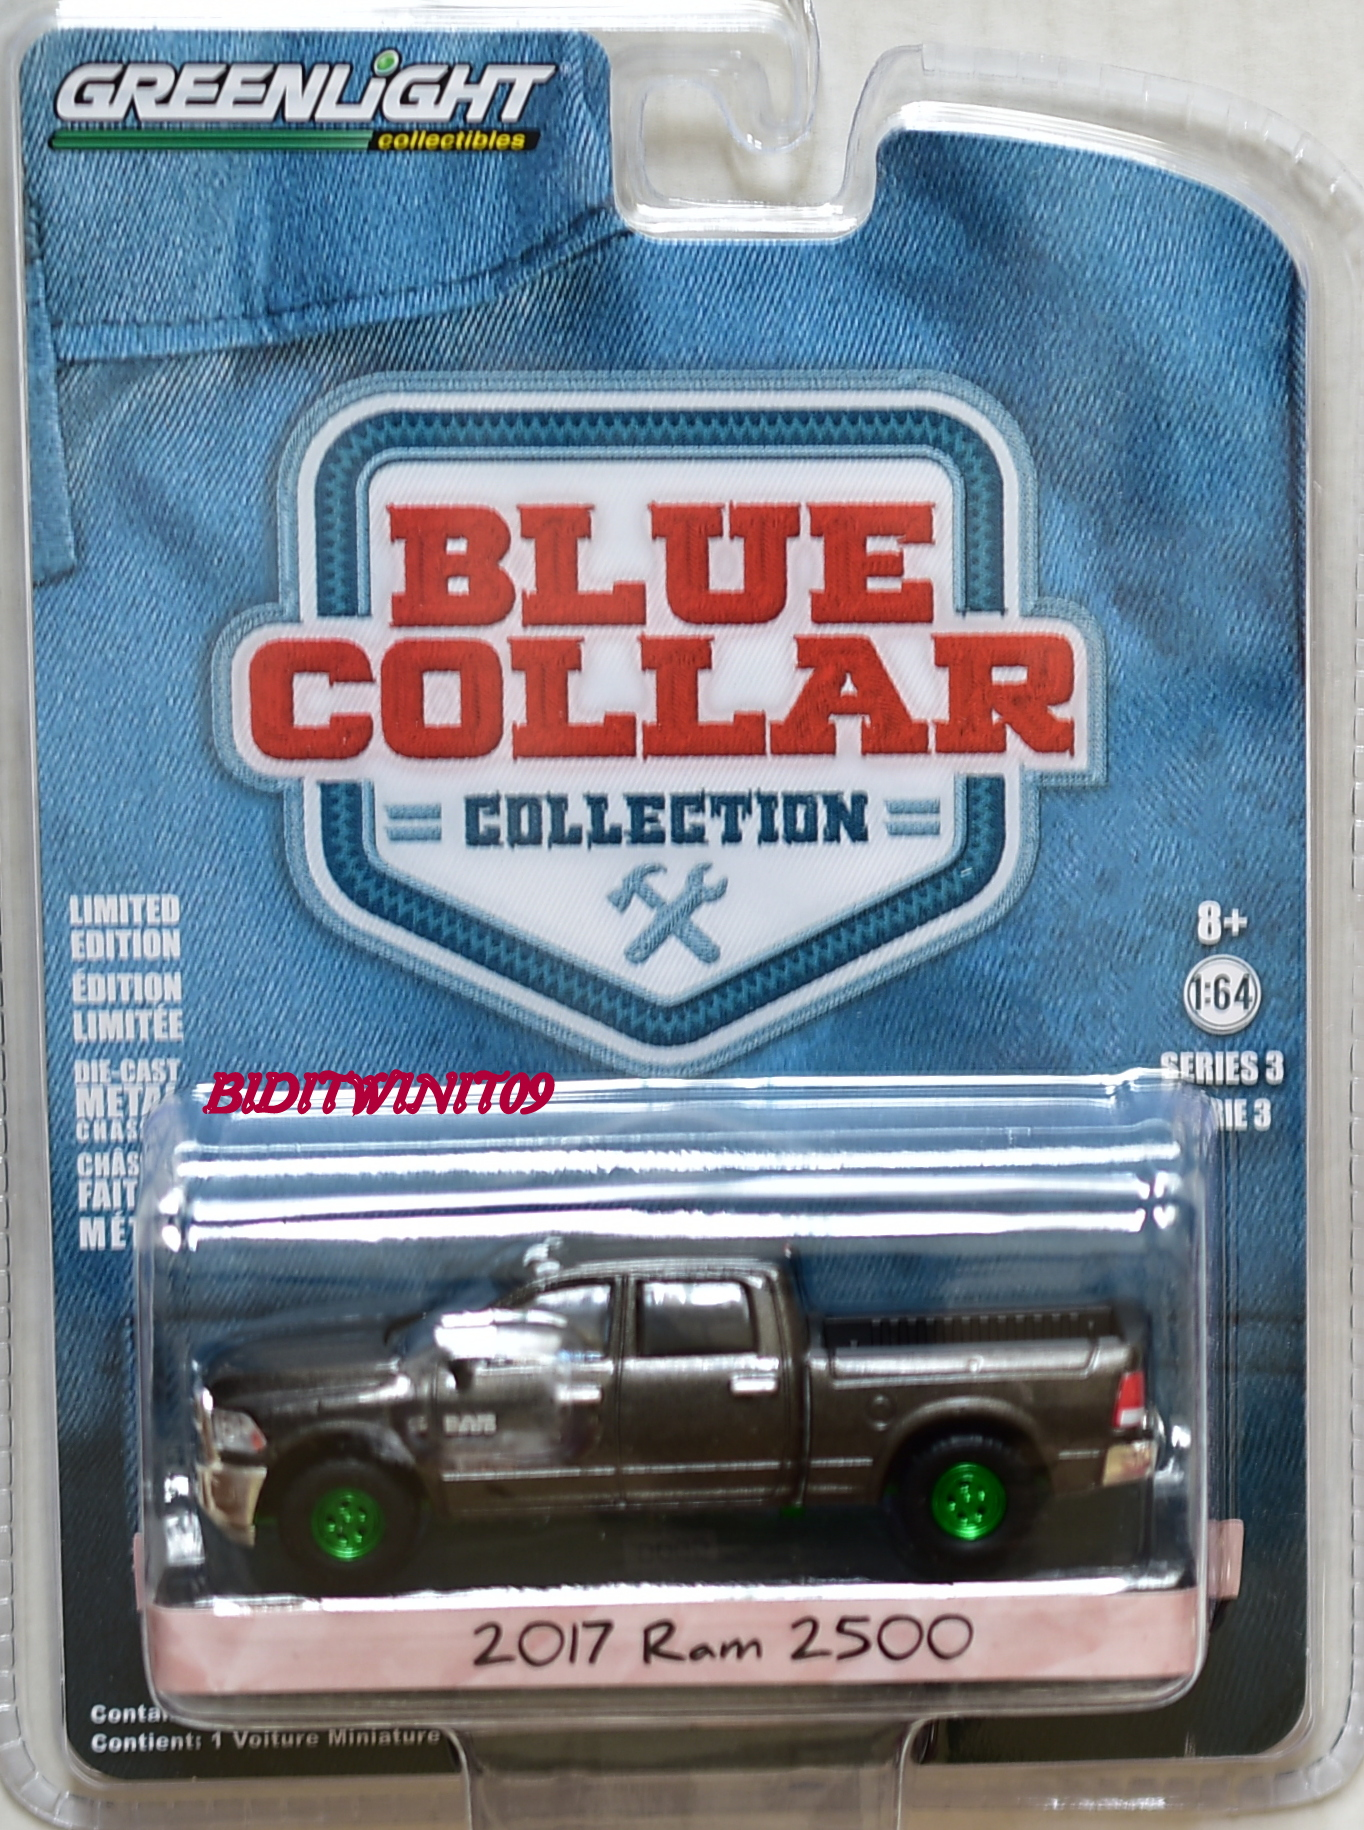 GREENLIGHT BLUE COLLAR SERIES 3 2017 RAM 2500 GREEN MACHINE E+